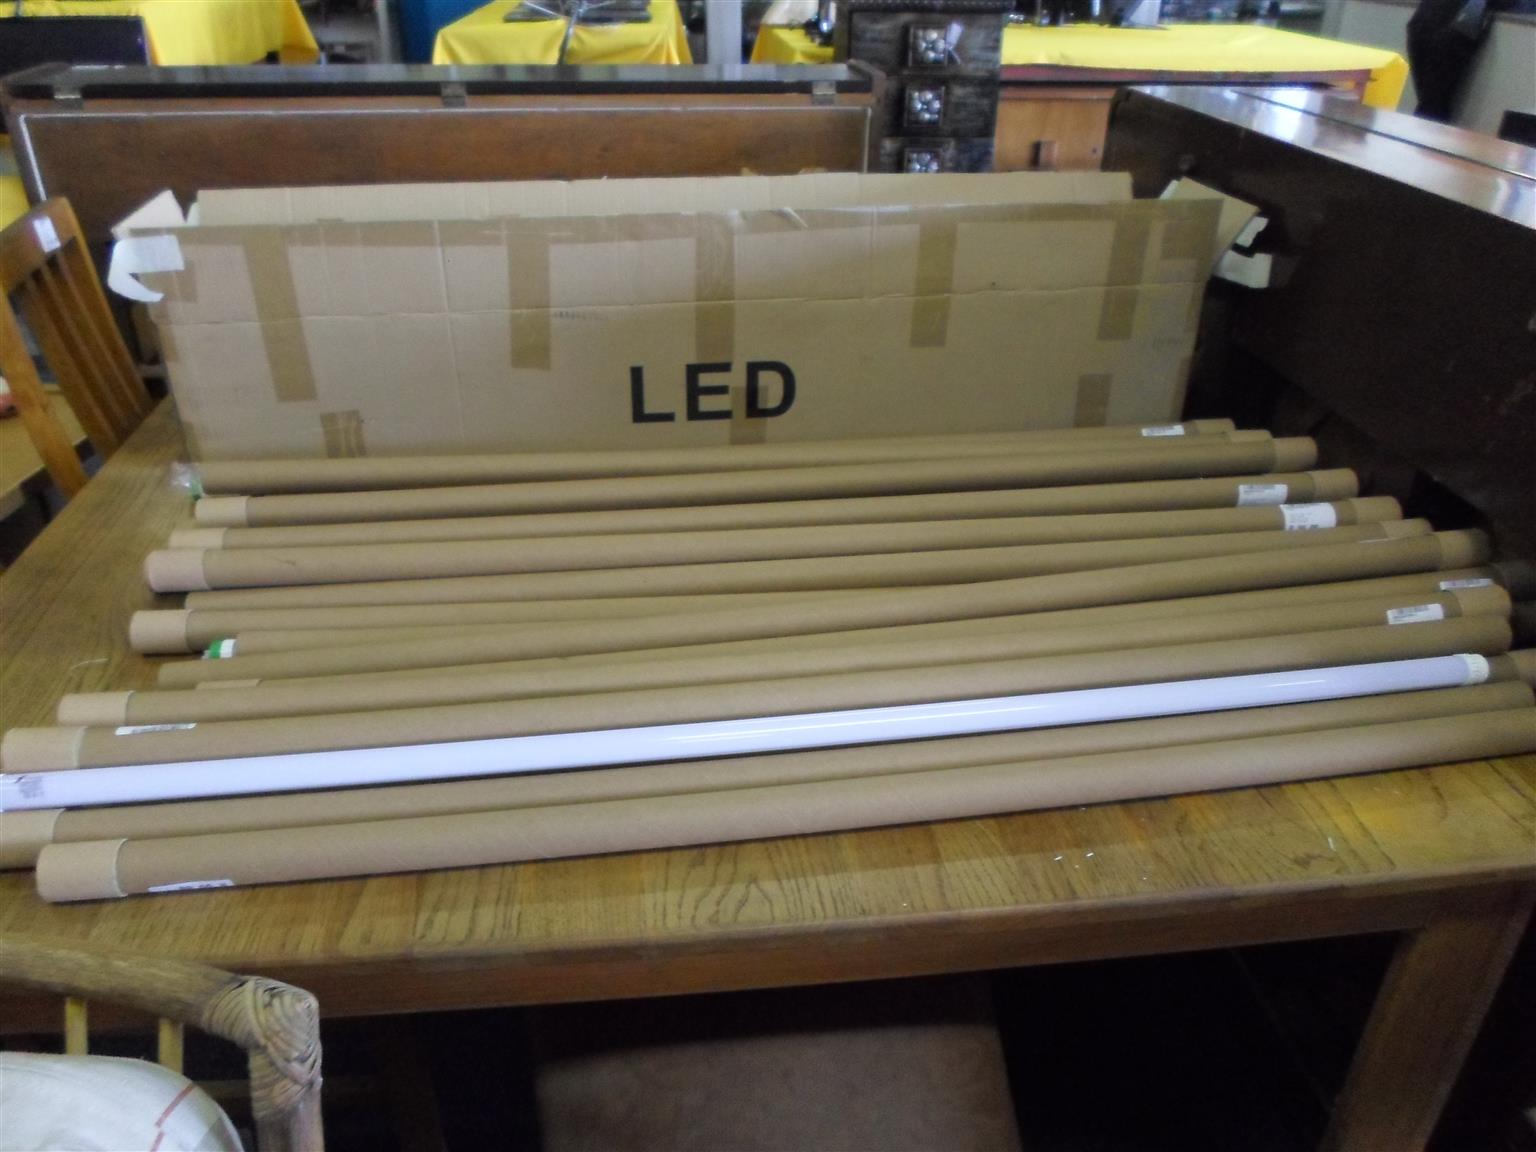 Zactic Fitting and Tube LED Lights